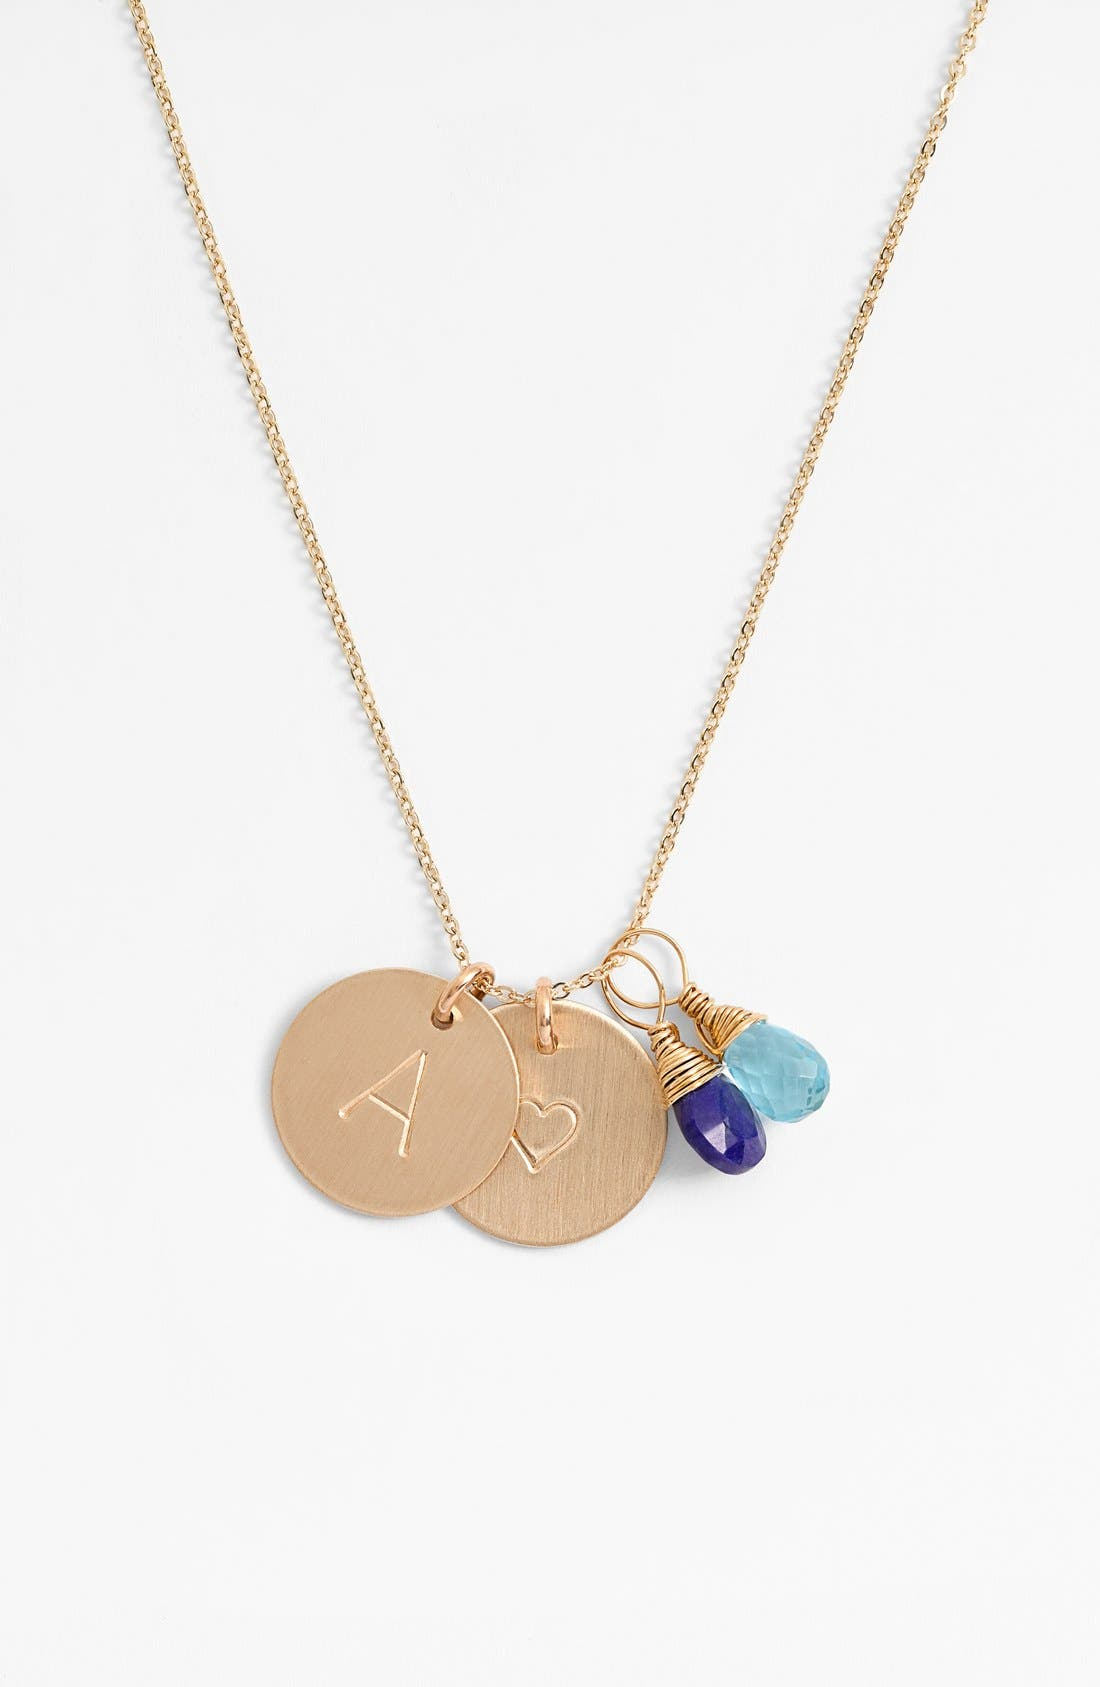 Nashelle Blue Quartz Initial & Heart 14k-Gold Fill Disc Necklace